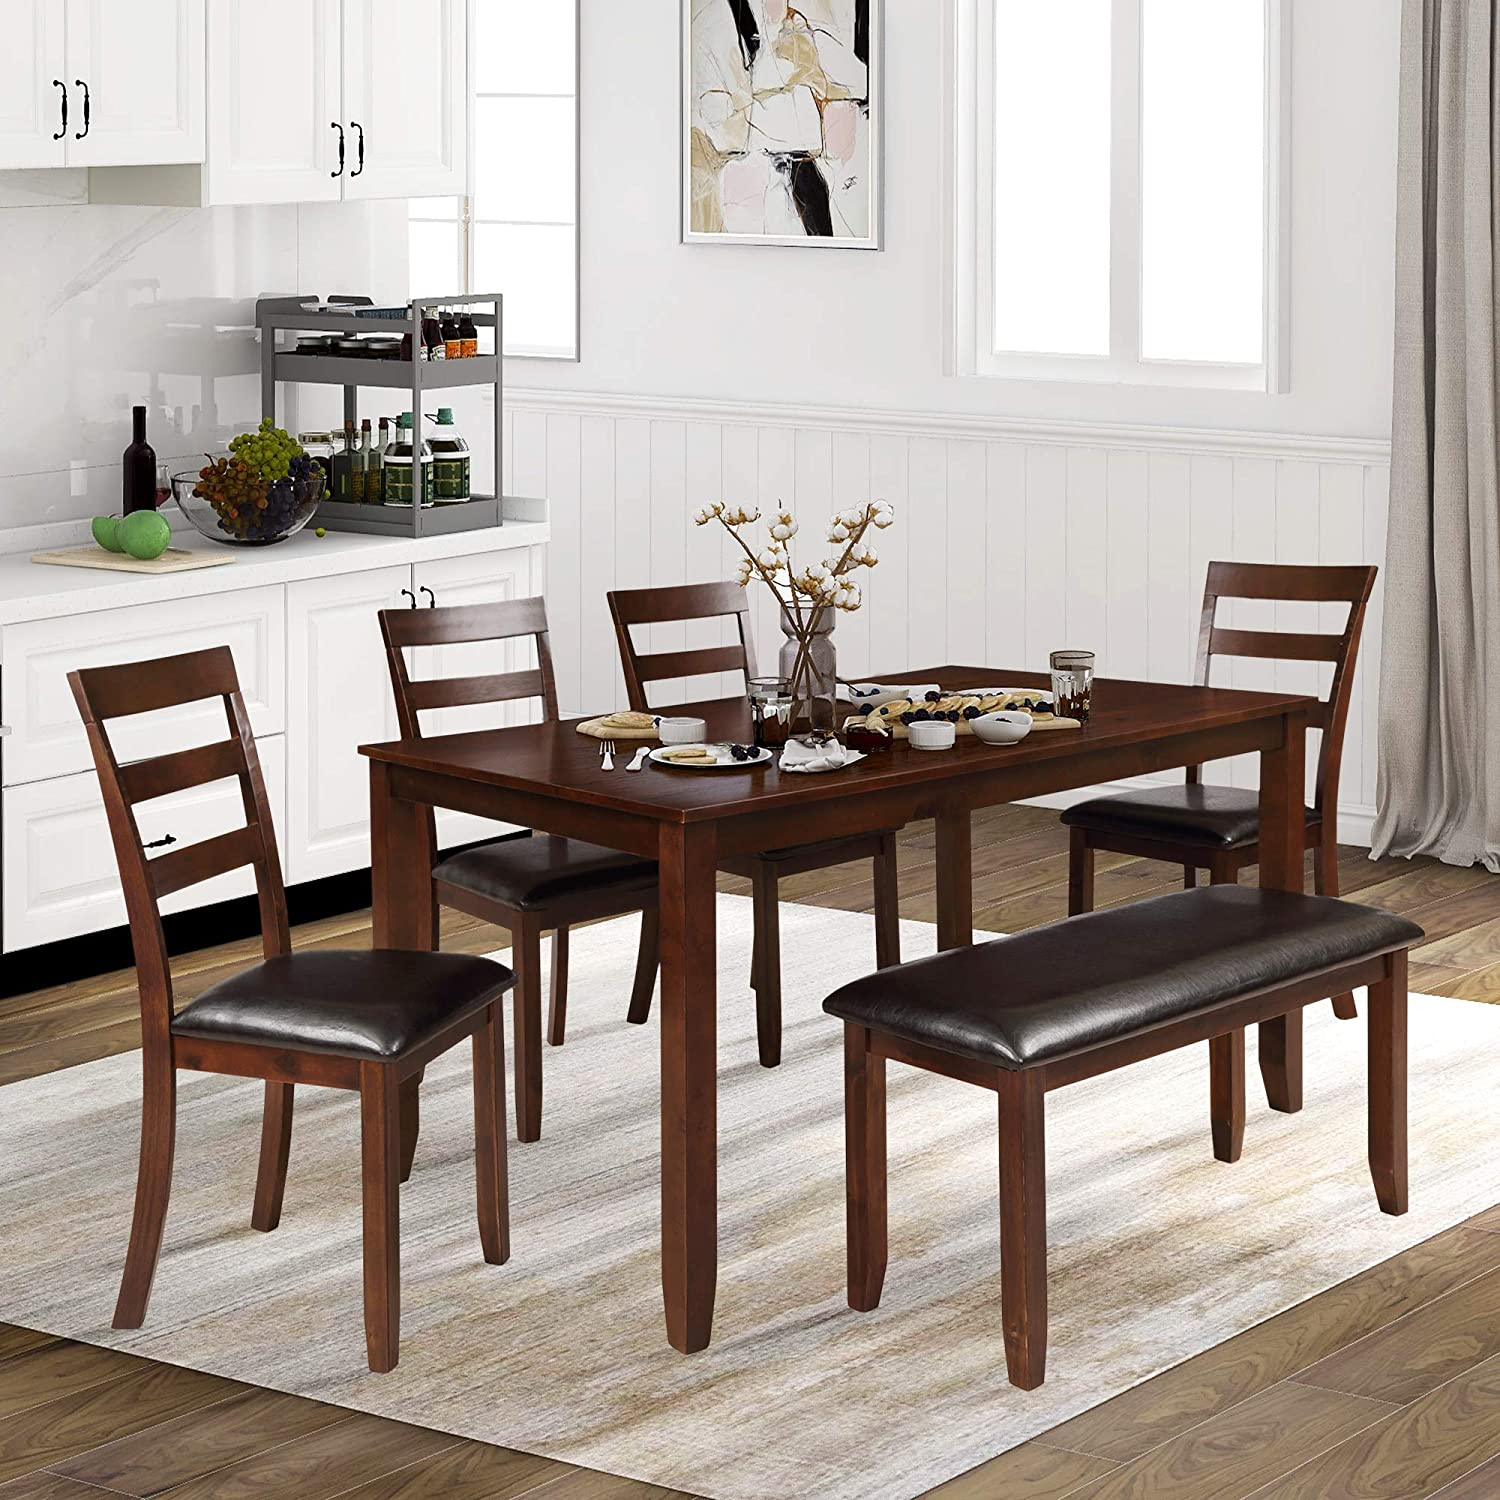 Amazon Com P Purlove 6 Piece Dining Table Set 6 Piece Wood Rectangular Kitchen Table Set With 4 Pu Leather Padded Chairs And 1 Bench For Kitchen Walnut Table Chair Sets